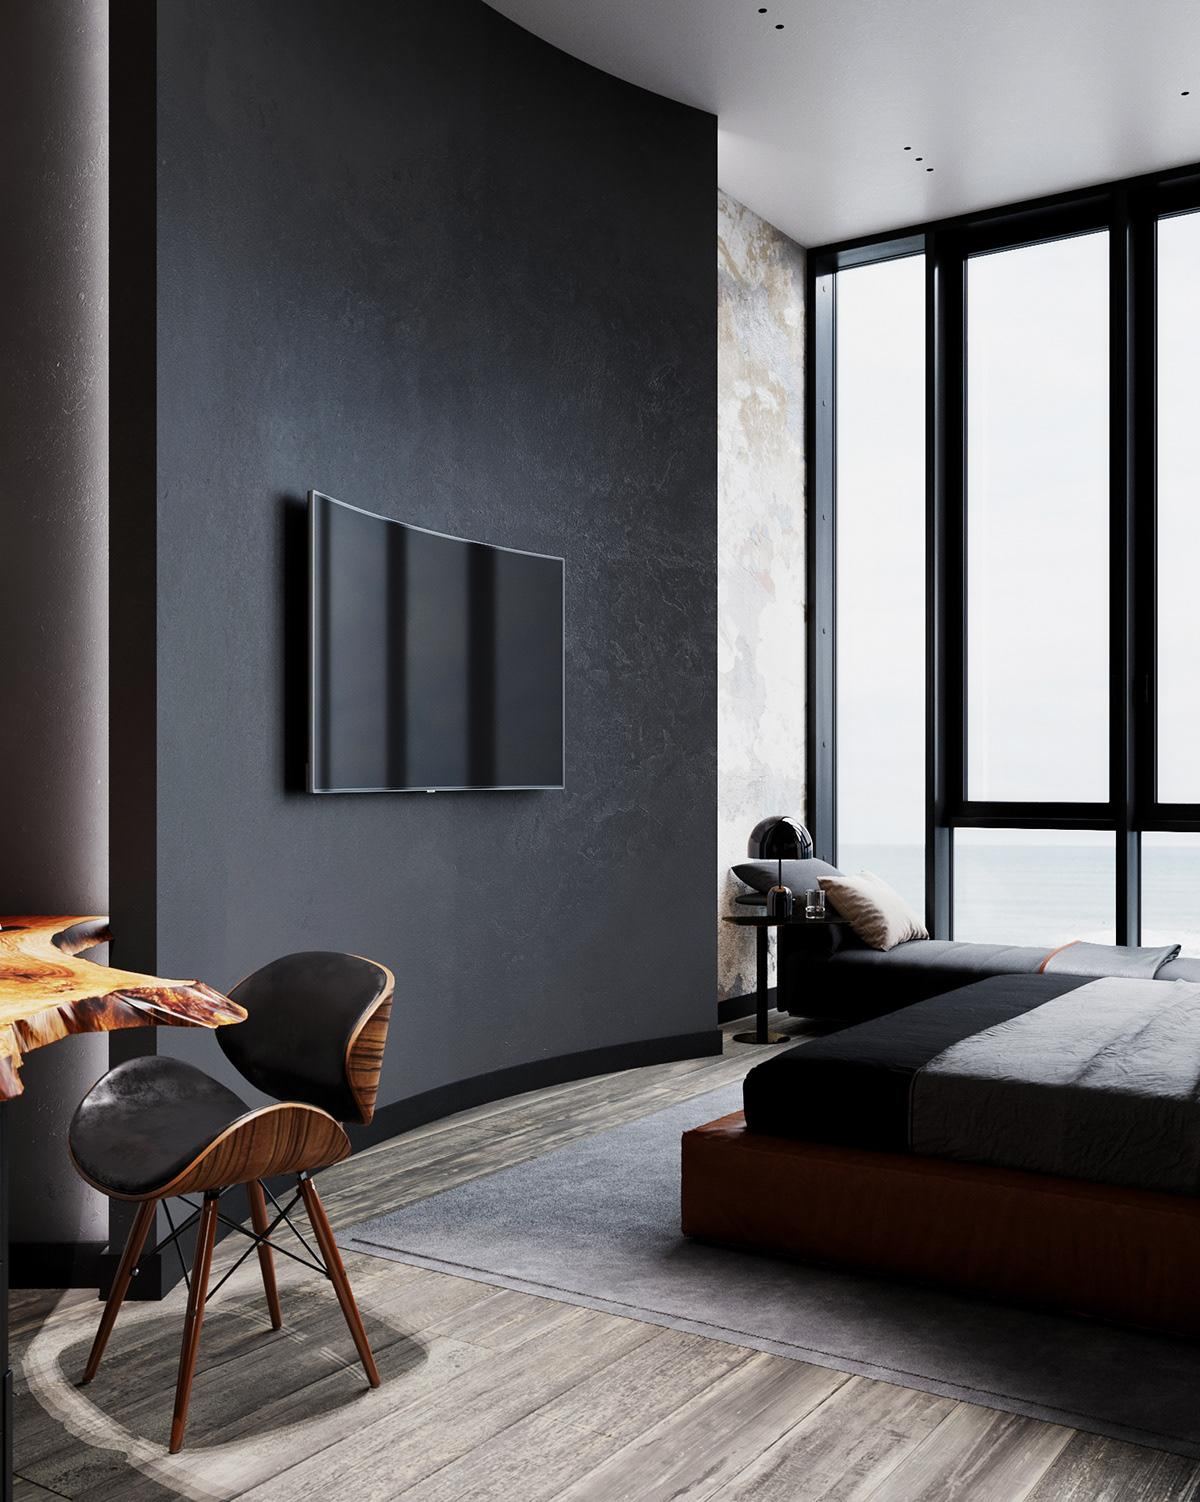 The perfection and simplicity of exquisite lines in every detail, perfectly matched palette of colors, all this creates a feeling of home comfort.